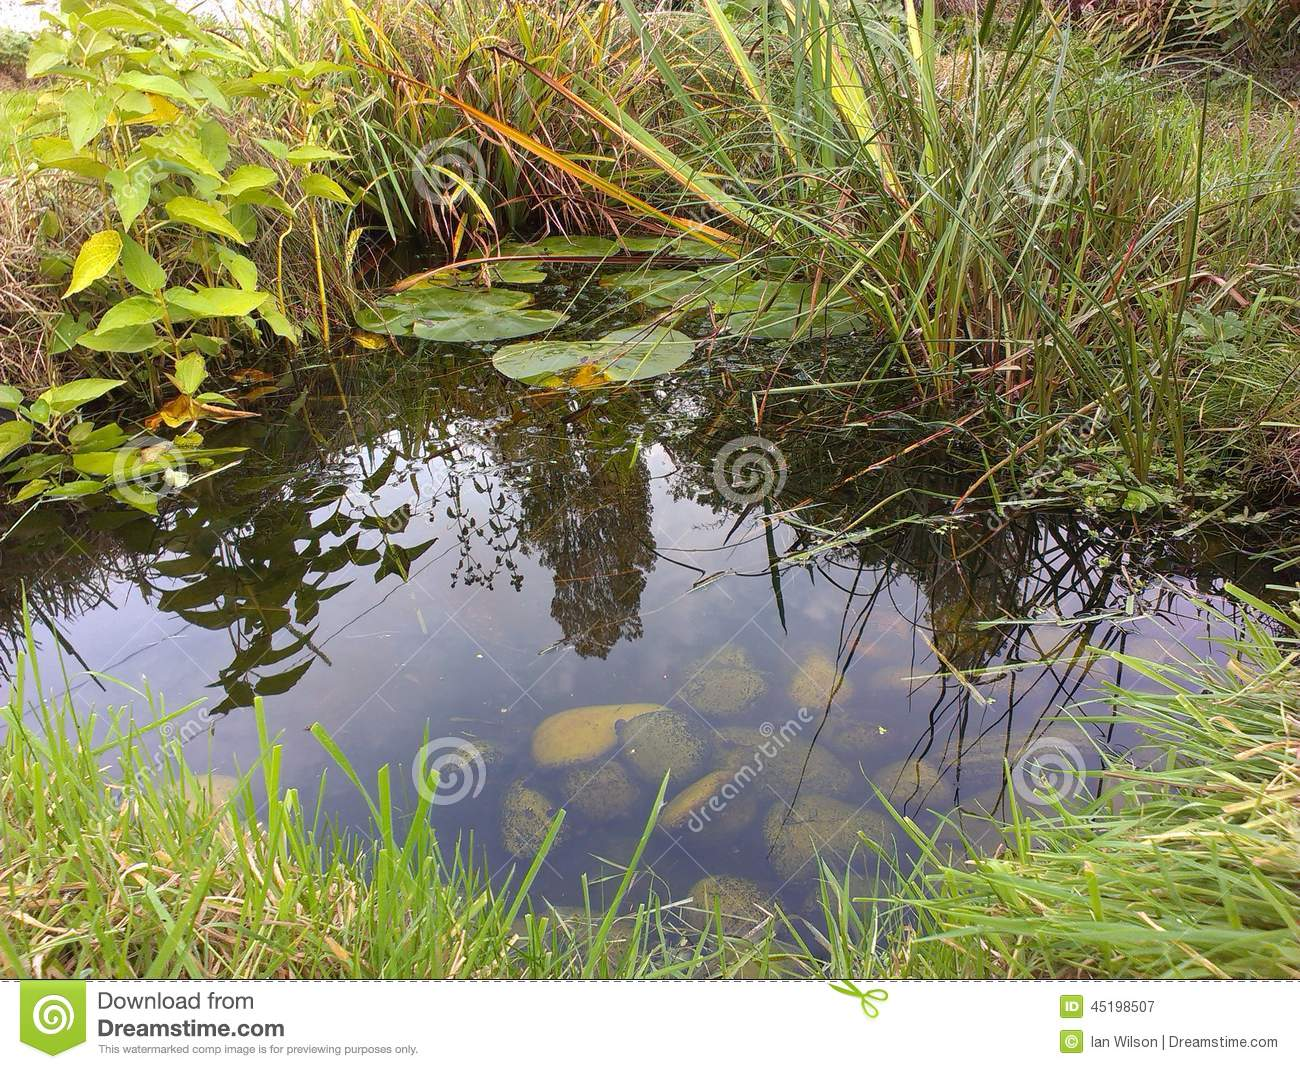 Garden Wildlife Pond Stock Image Image Of Suburban Plants 45198507